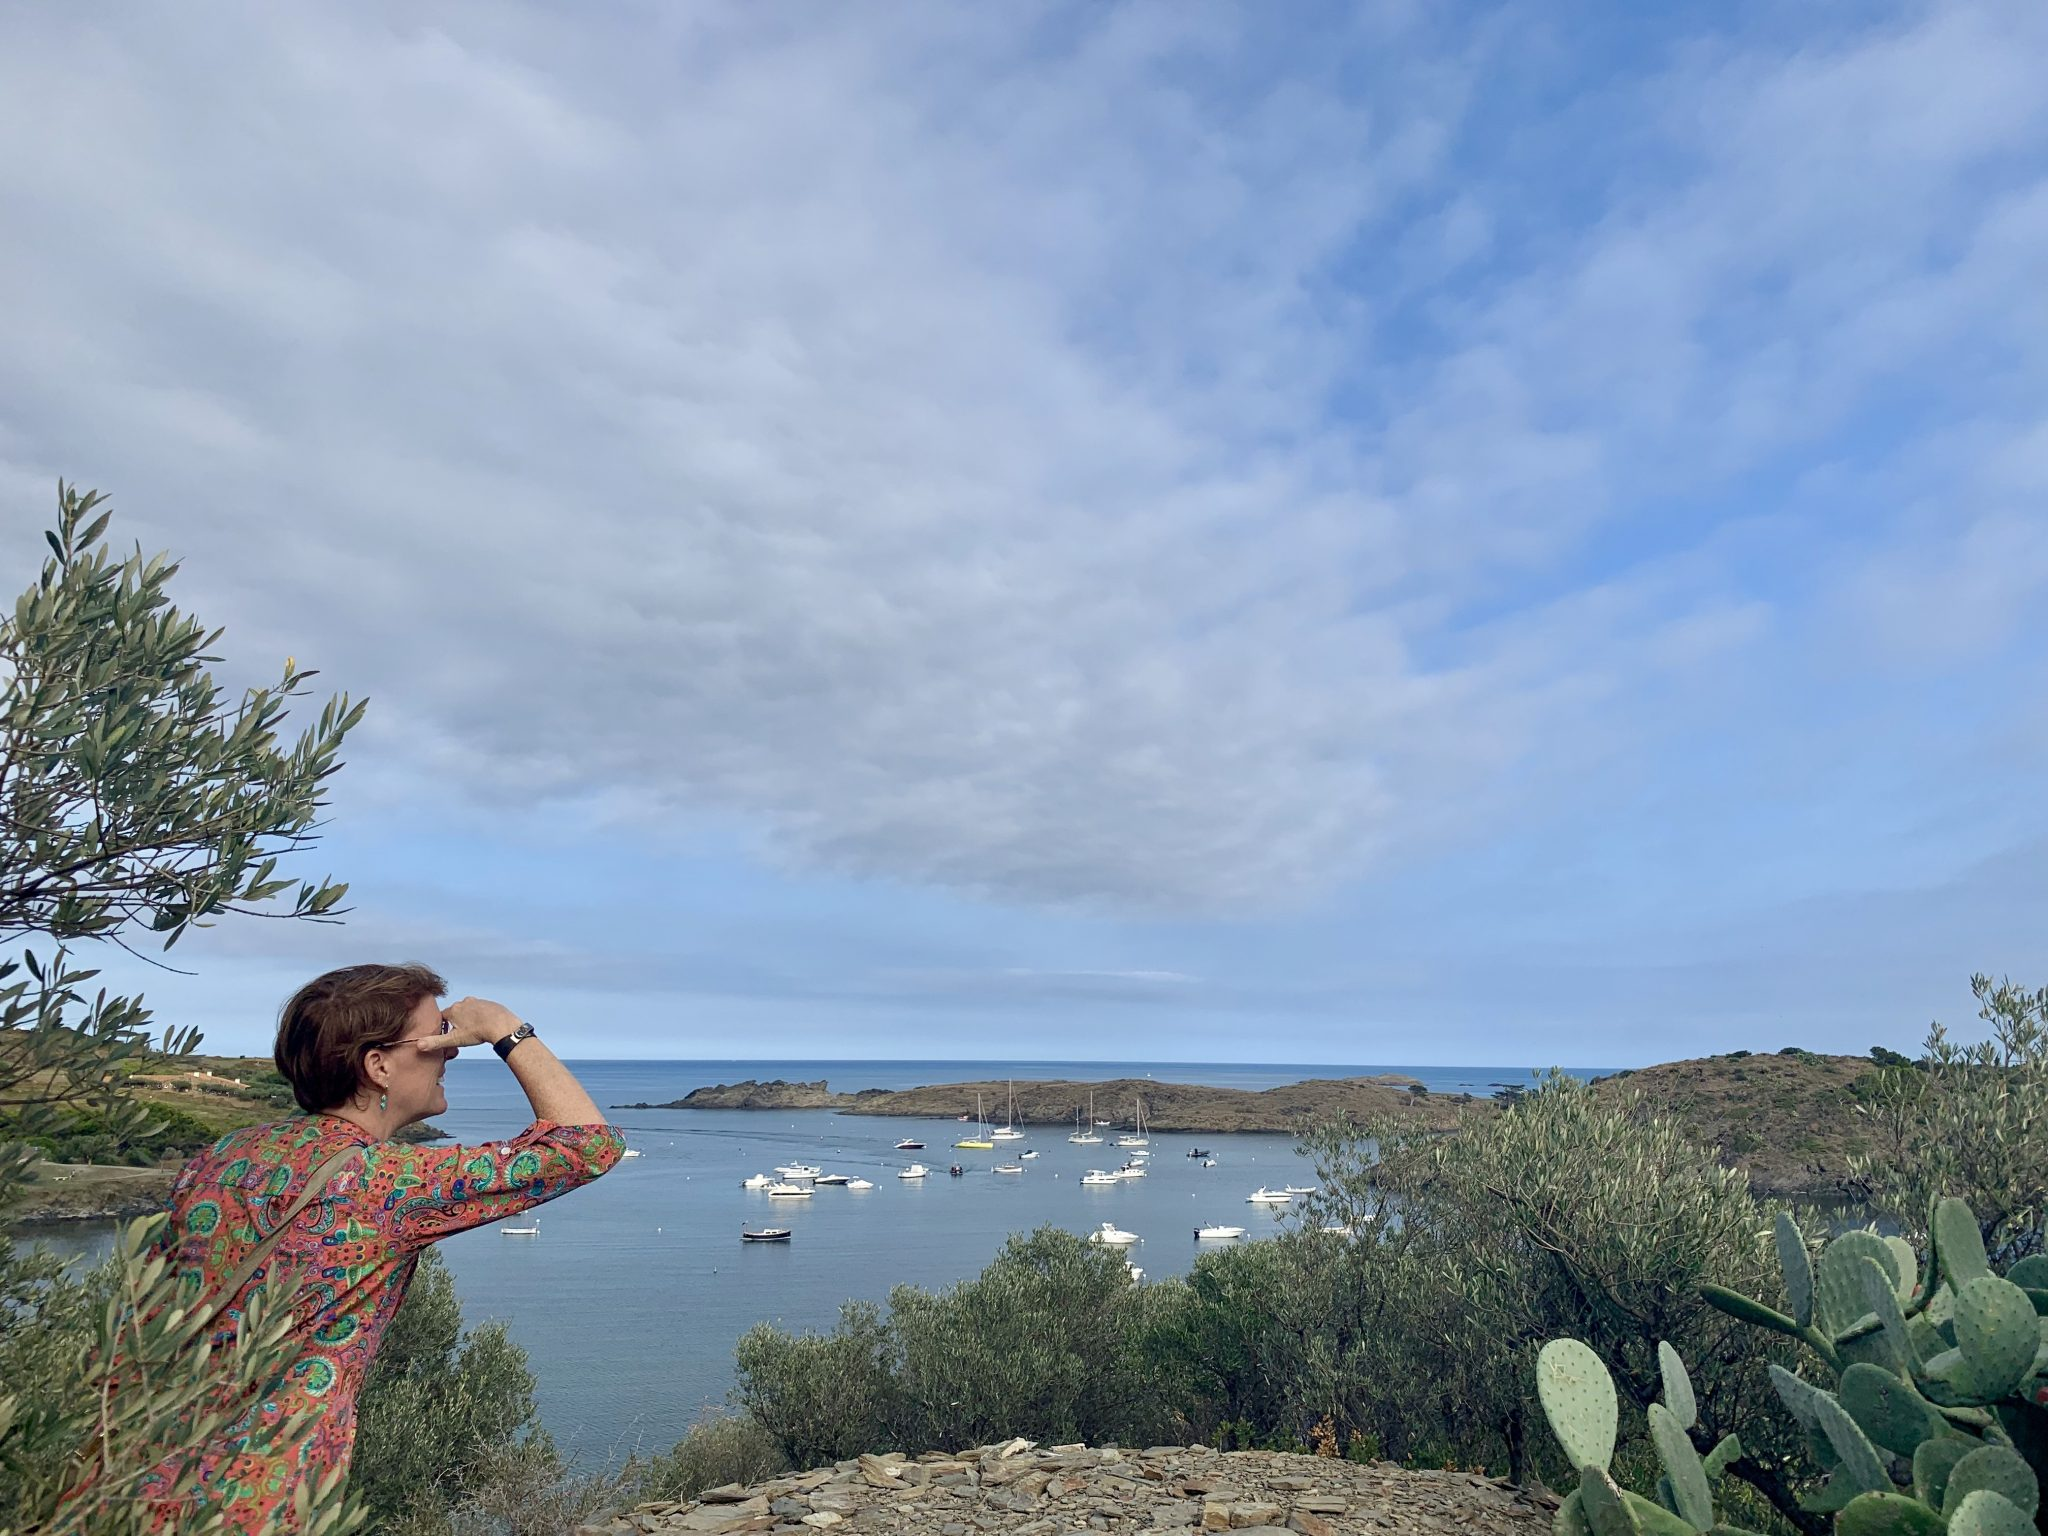 Woman looks out over bay of Portlligat.